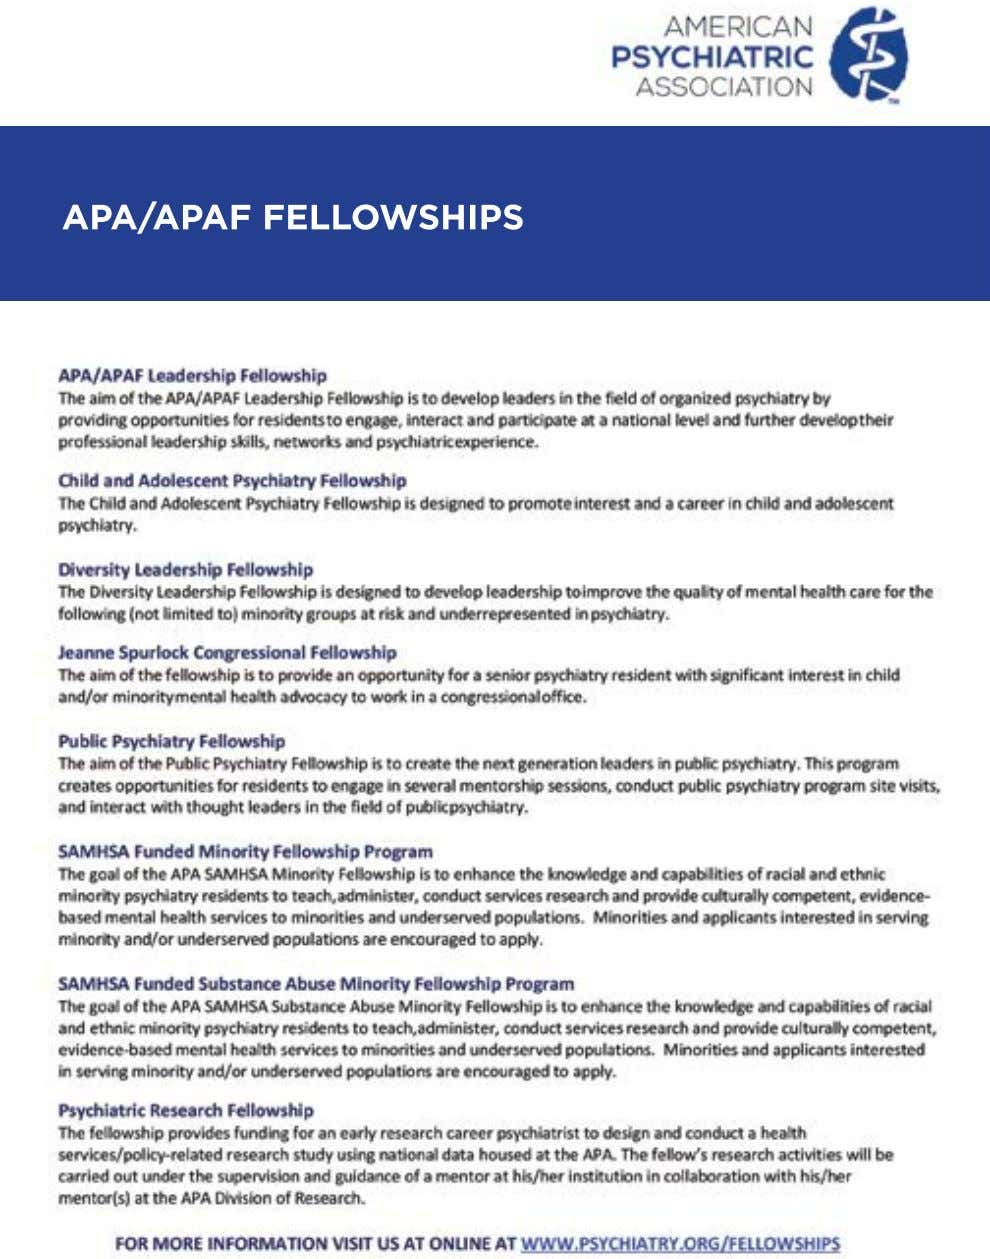 APA/APAF FELLOWSHIPS